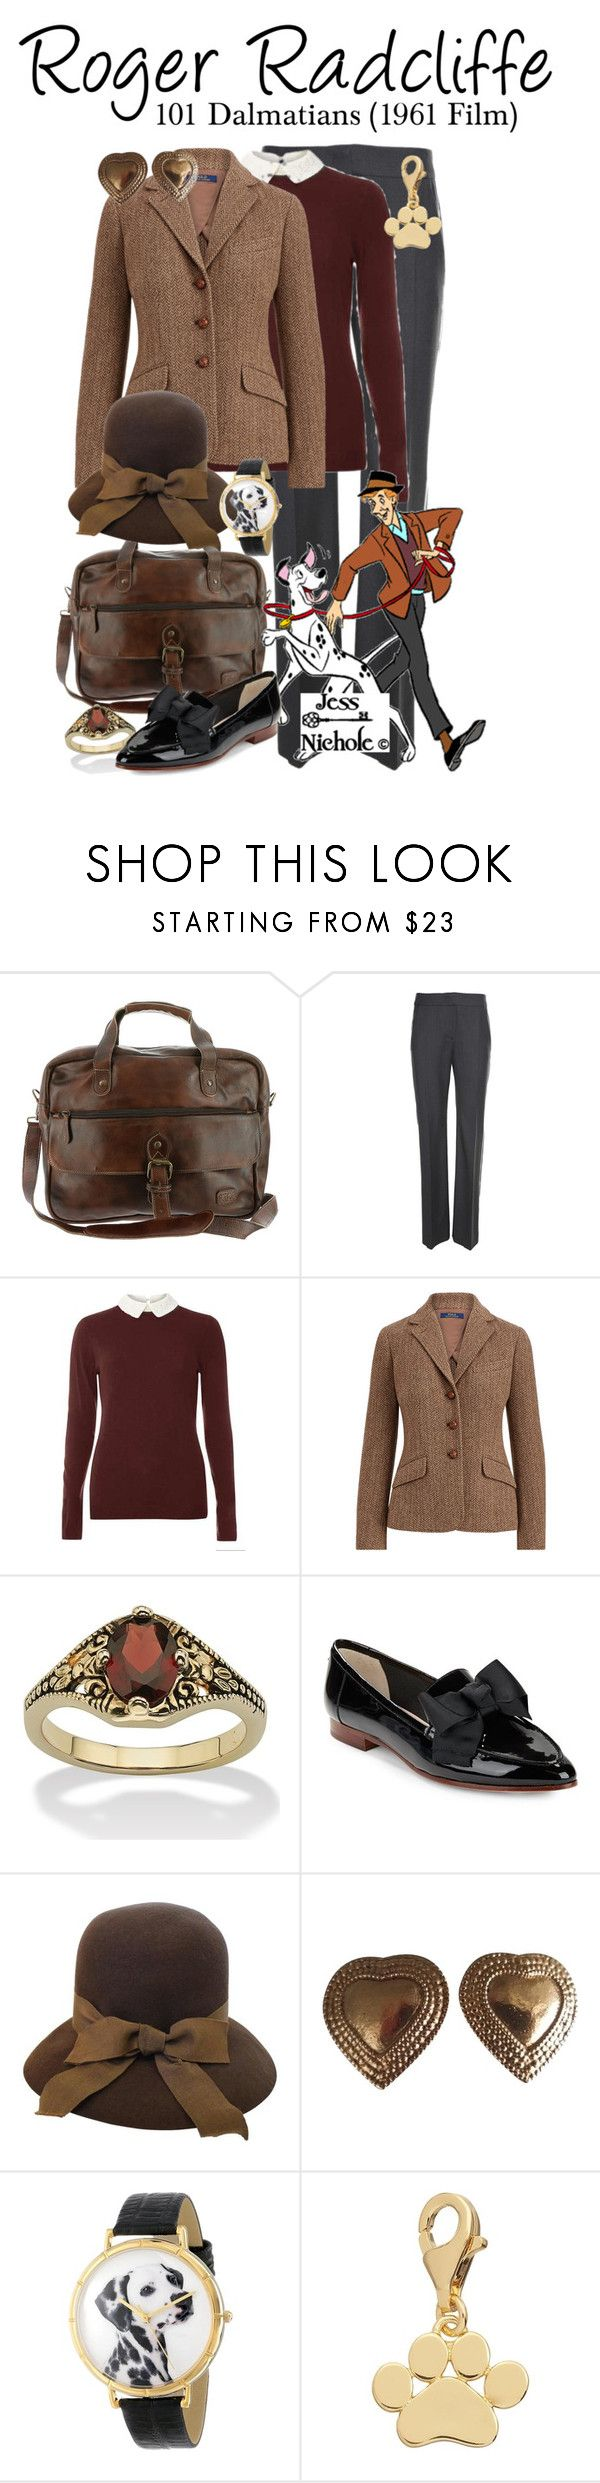 """""""Roger Radcliffe"""" by jess-nichole ❤ liked on Polyvore featuring Bed